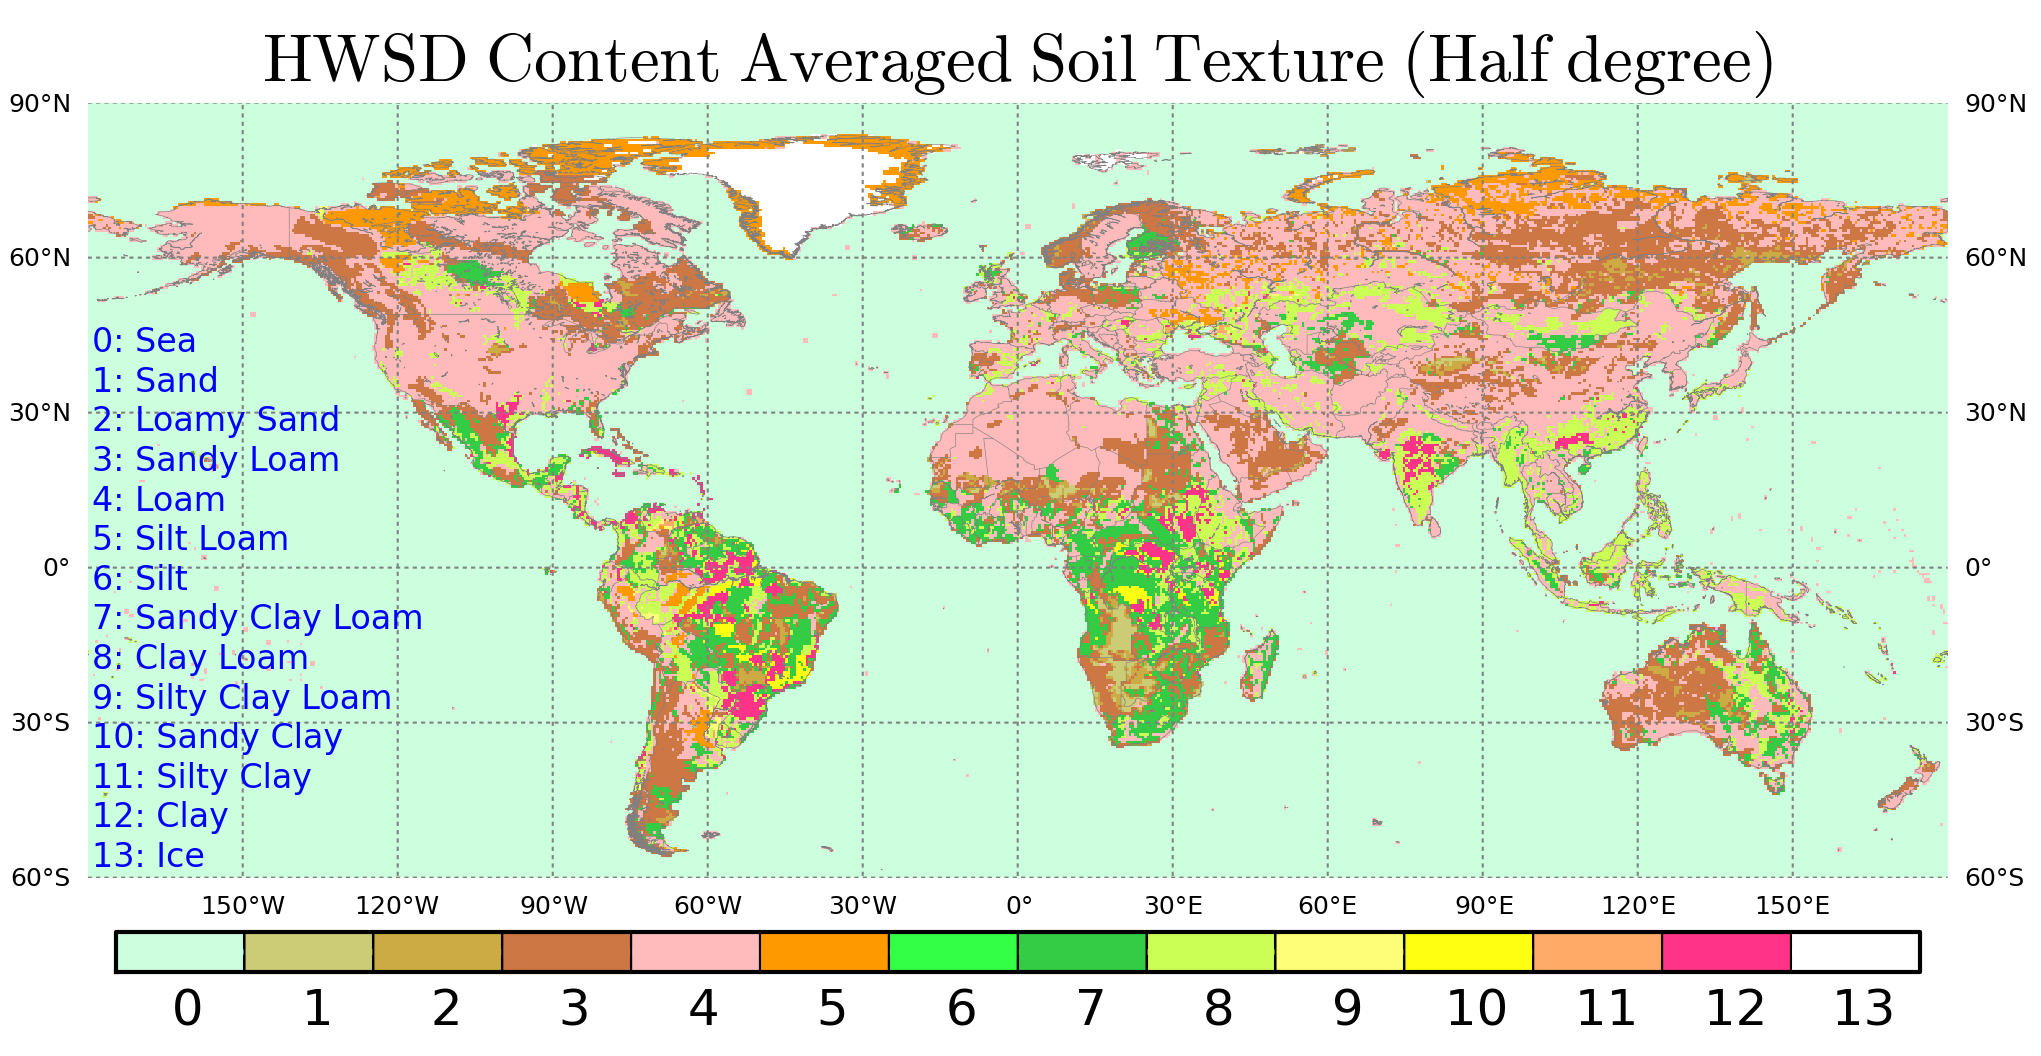 Where Is Tokyo Located On The World Map.Soil Texture Map